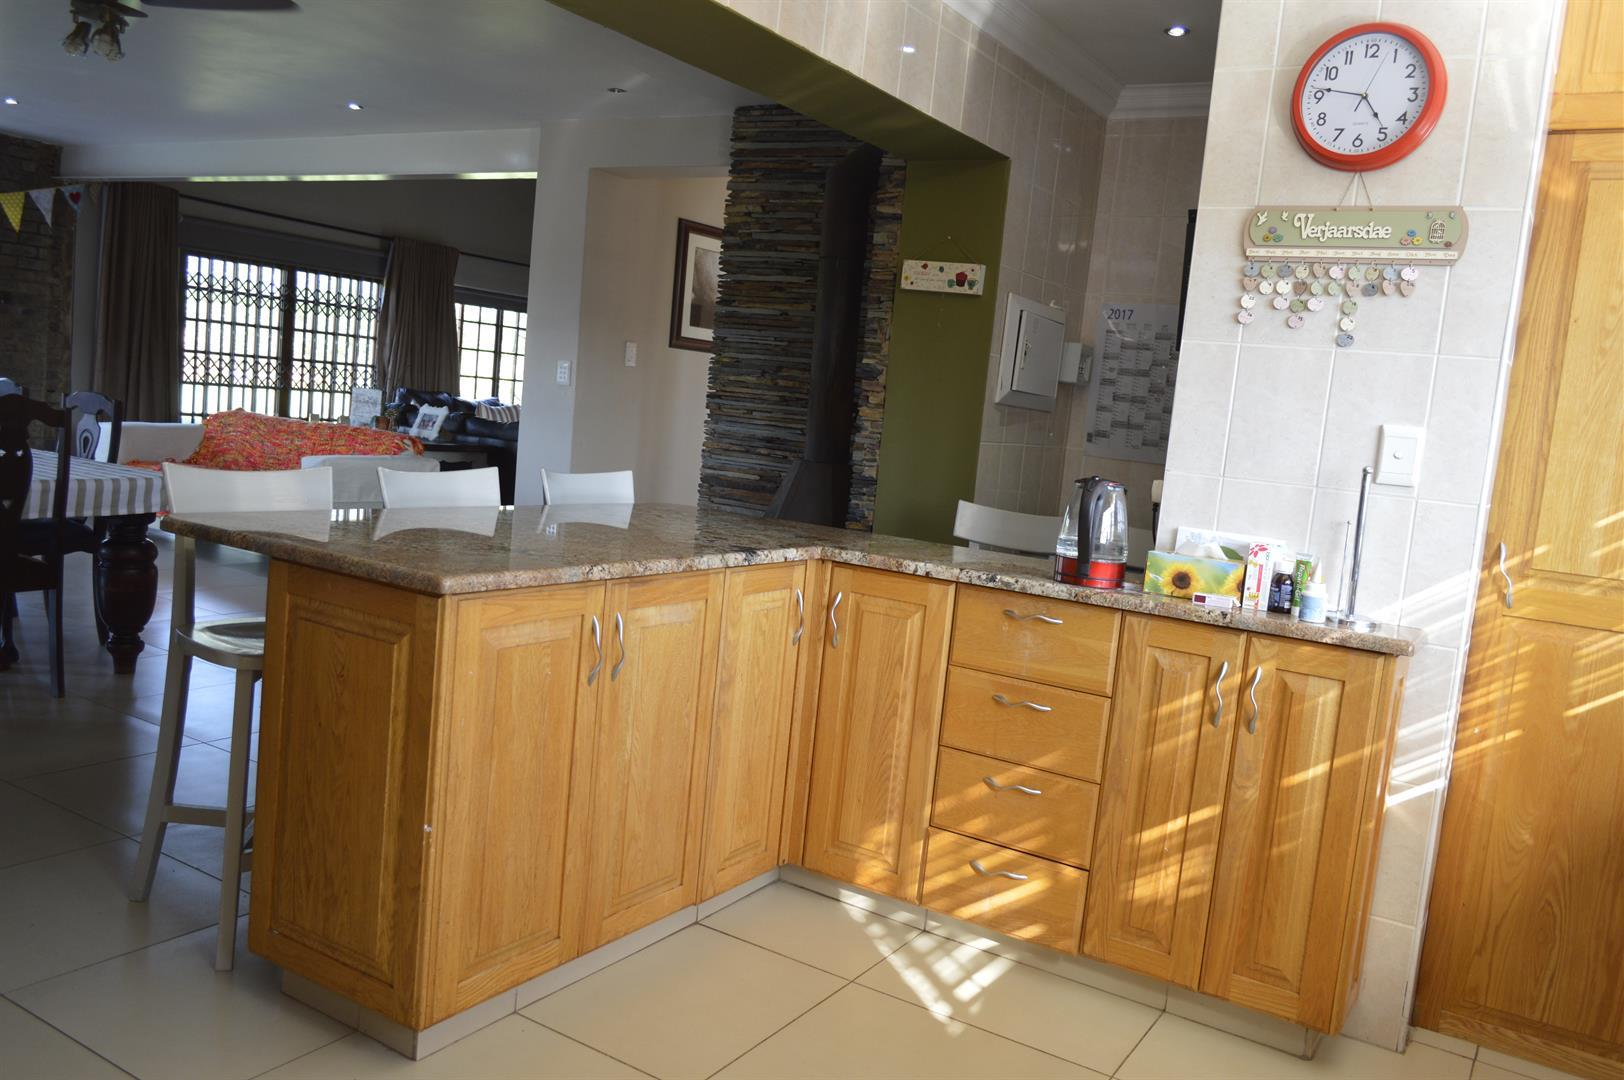 Raslouw A H property for sale. Ref No: 13442161. Picture no 6